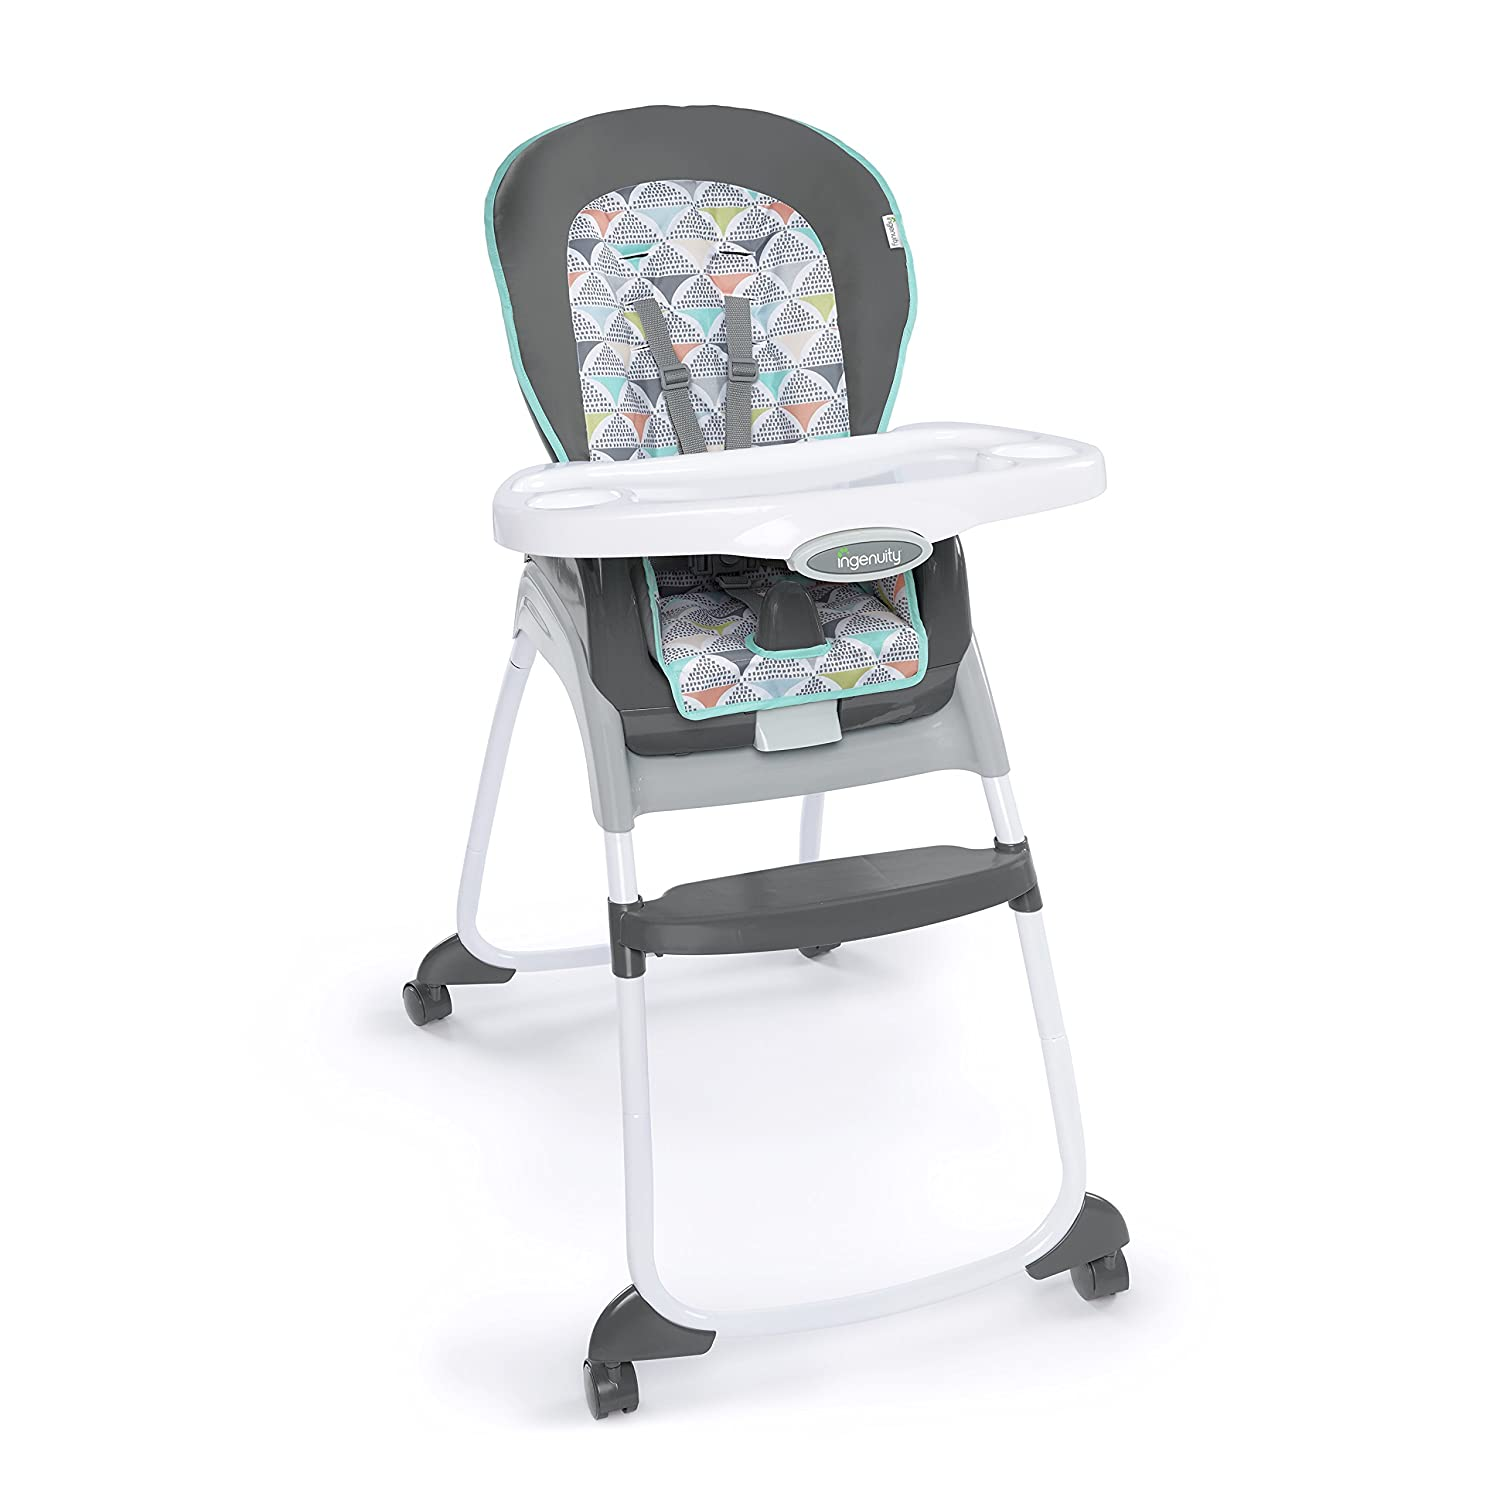 3-in-1 High Chair dining chair booster chair training